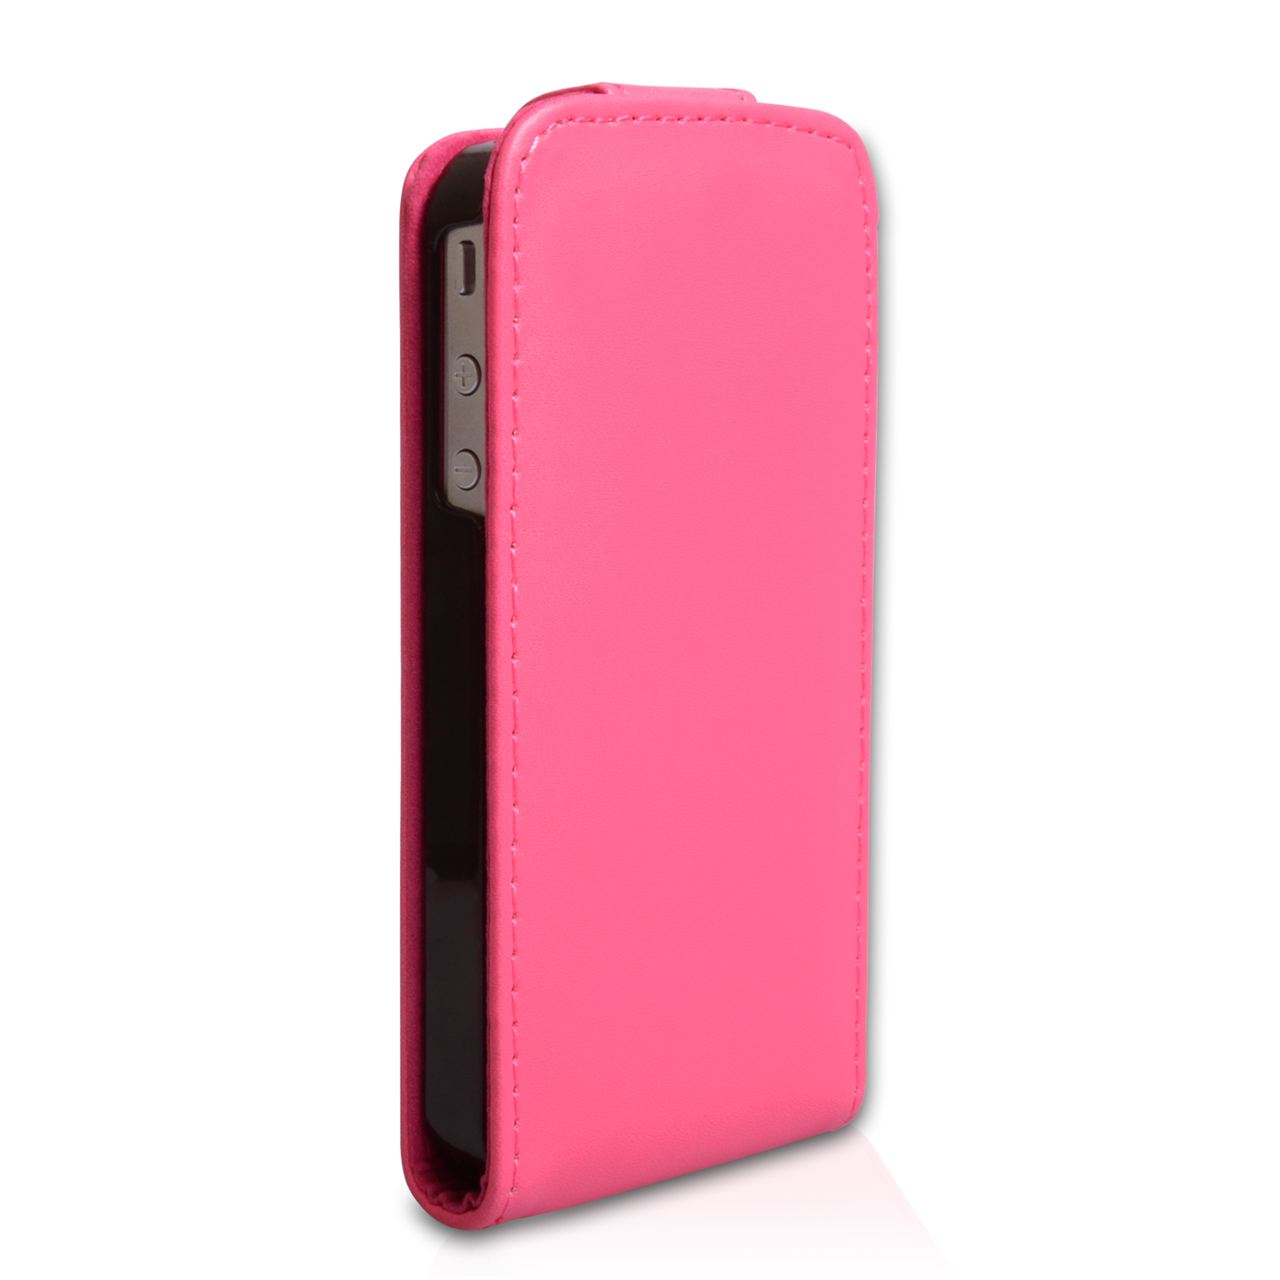 YouSave Accessories iPhone 4 / 4S Leather Effect Flip Case - Hot Pink